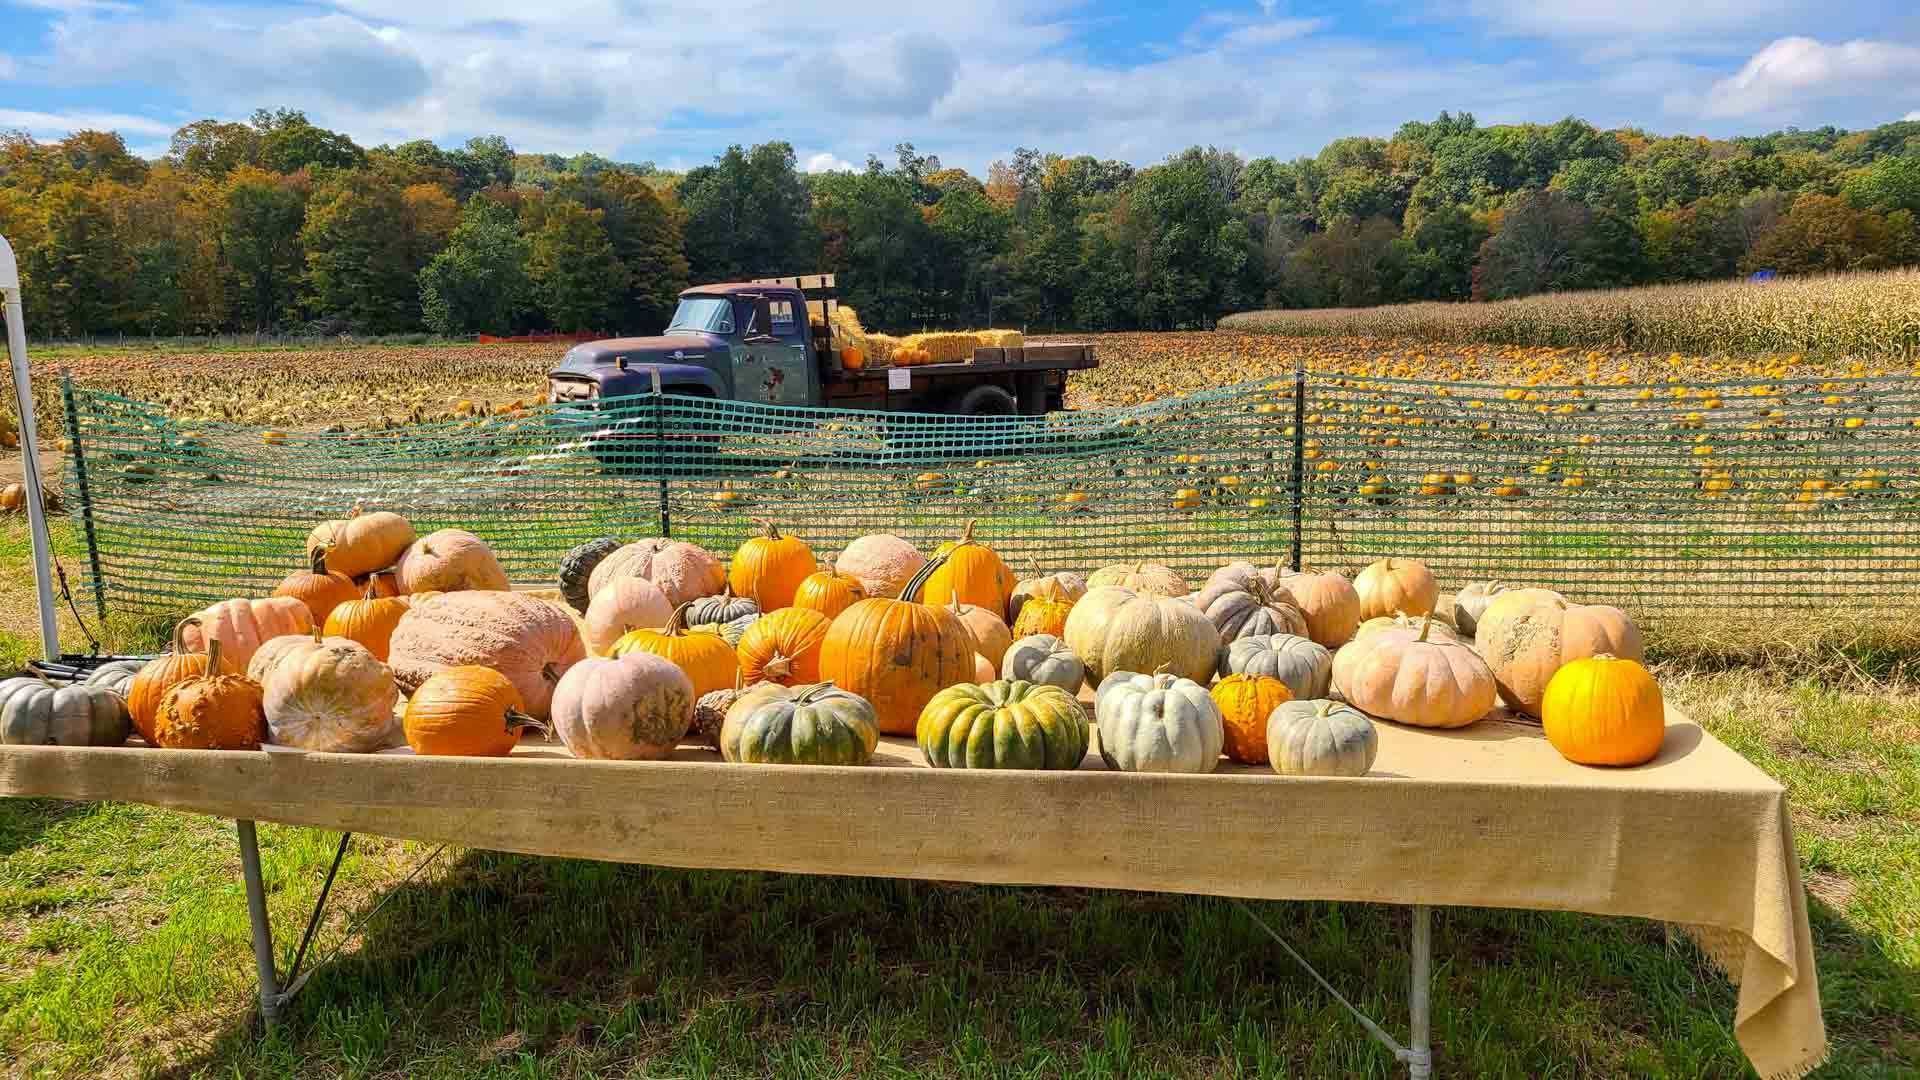 Puesto de calabazas en The Farm, Woodbury, Connecticut